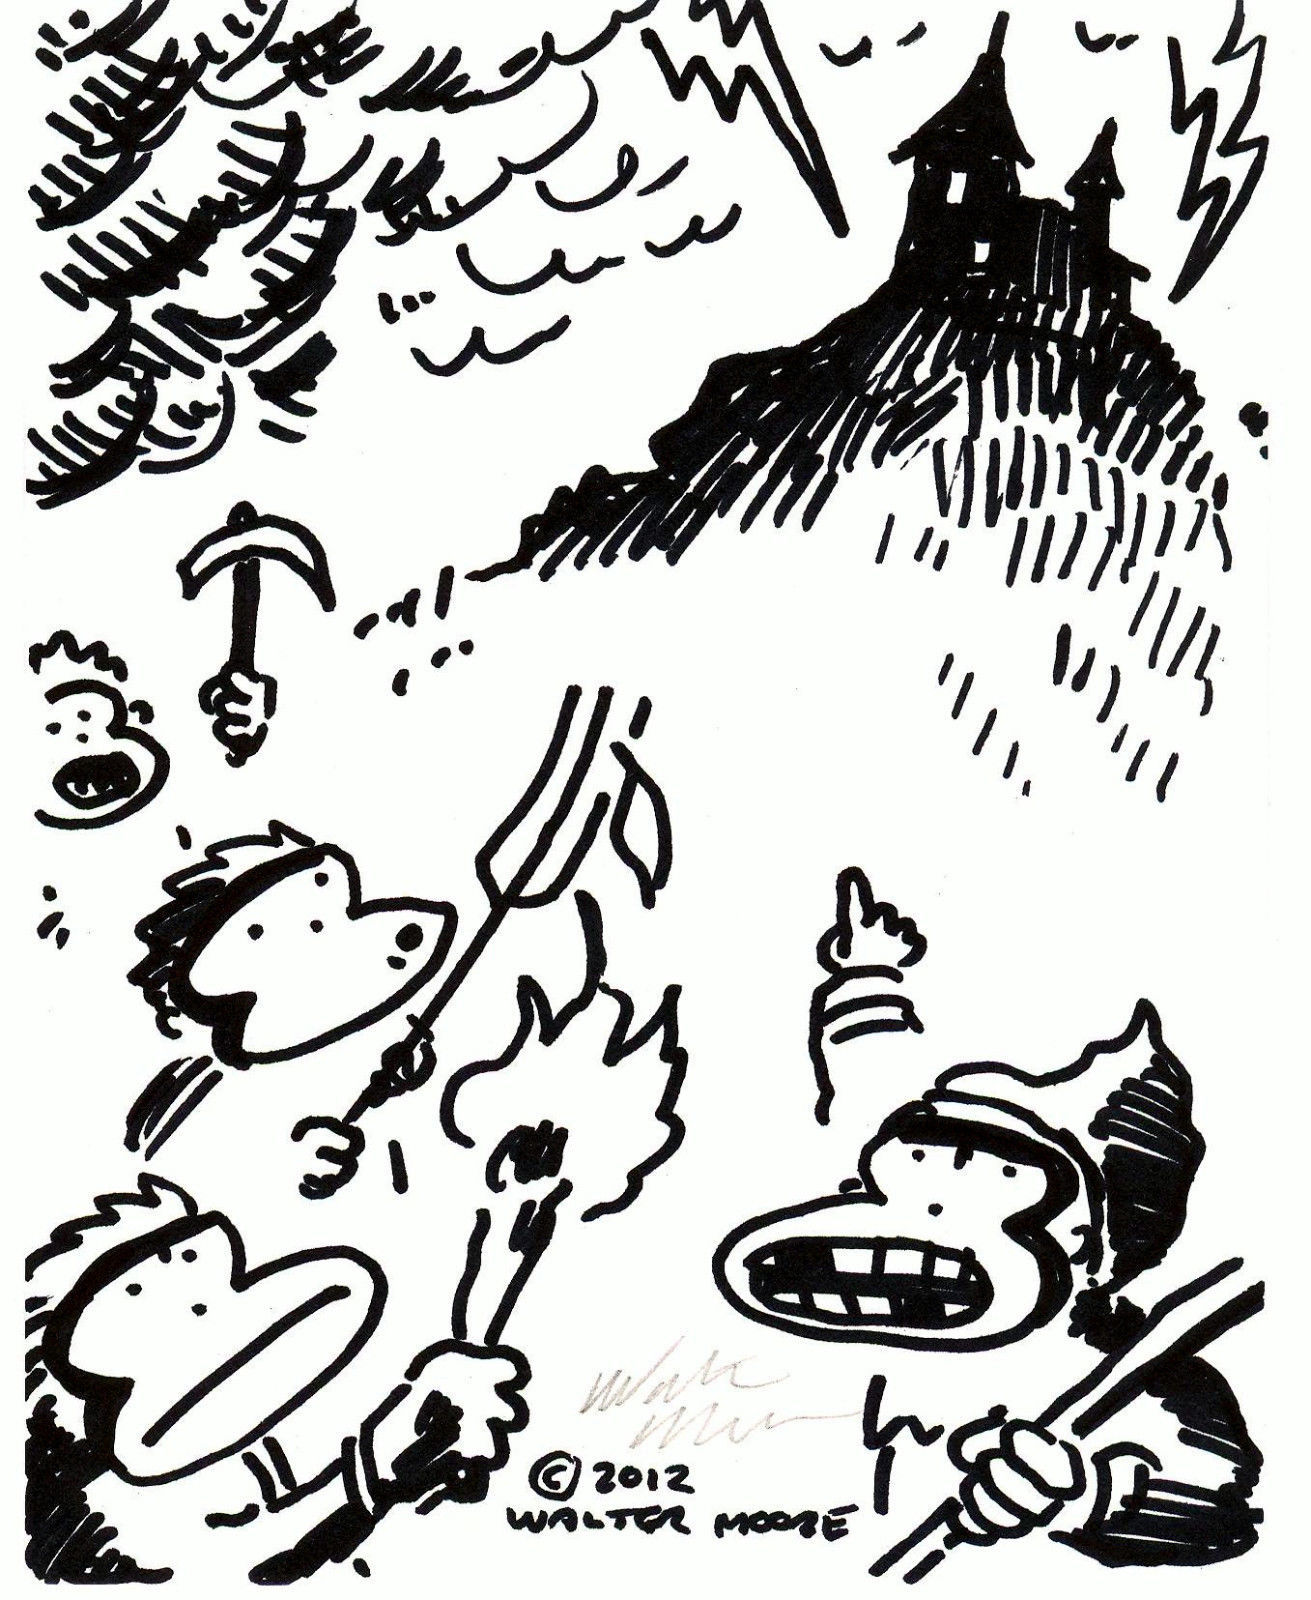 Primary image for Ape Peasants Storm the Castle. Original Signed Cartoon by Walter Moore 28D12